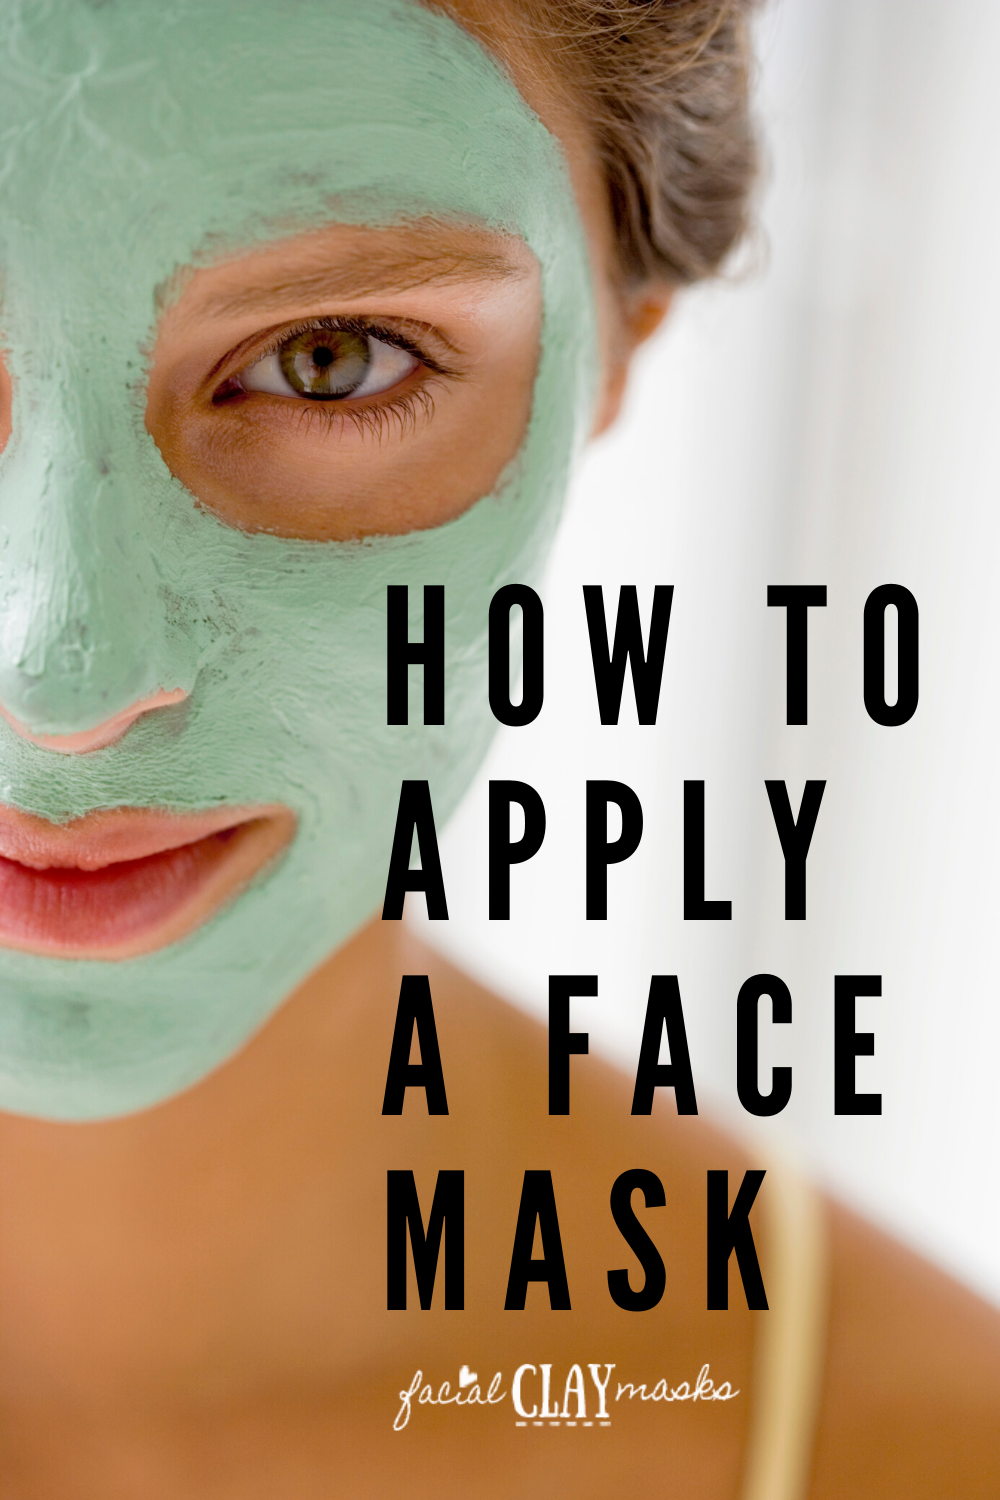 How to Apply Face Mask 1